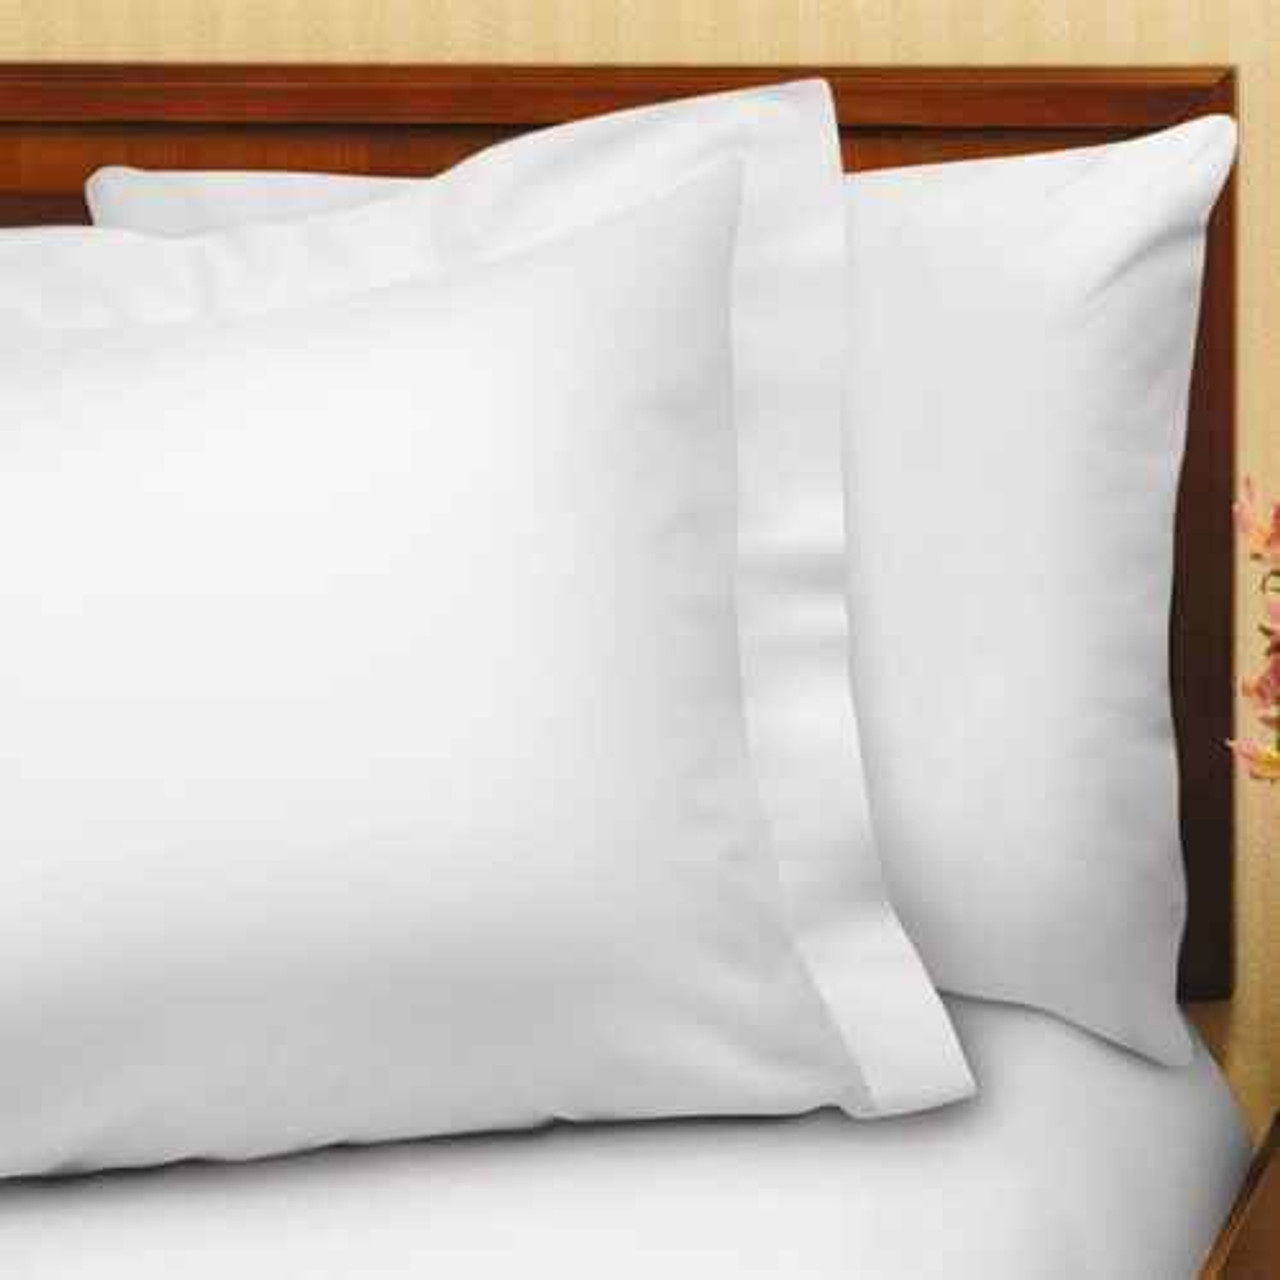 1888 Mills Suite Touch by 1888 Mills - All Linen and Sizes